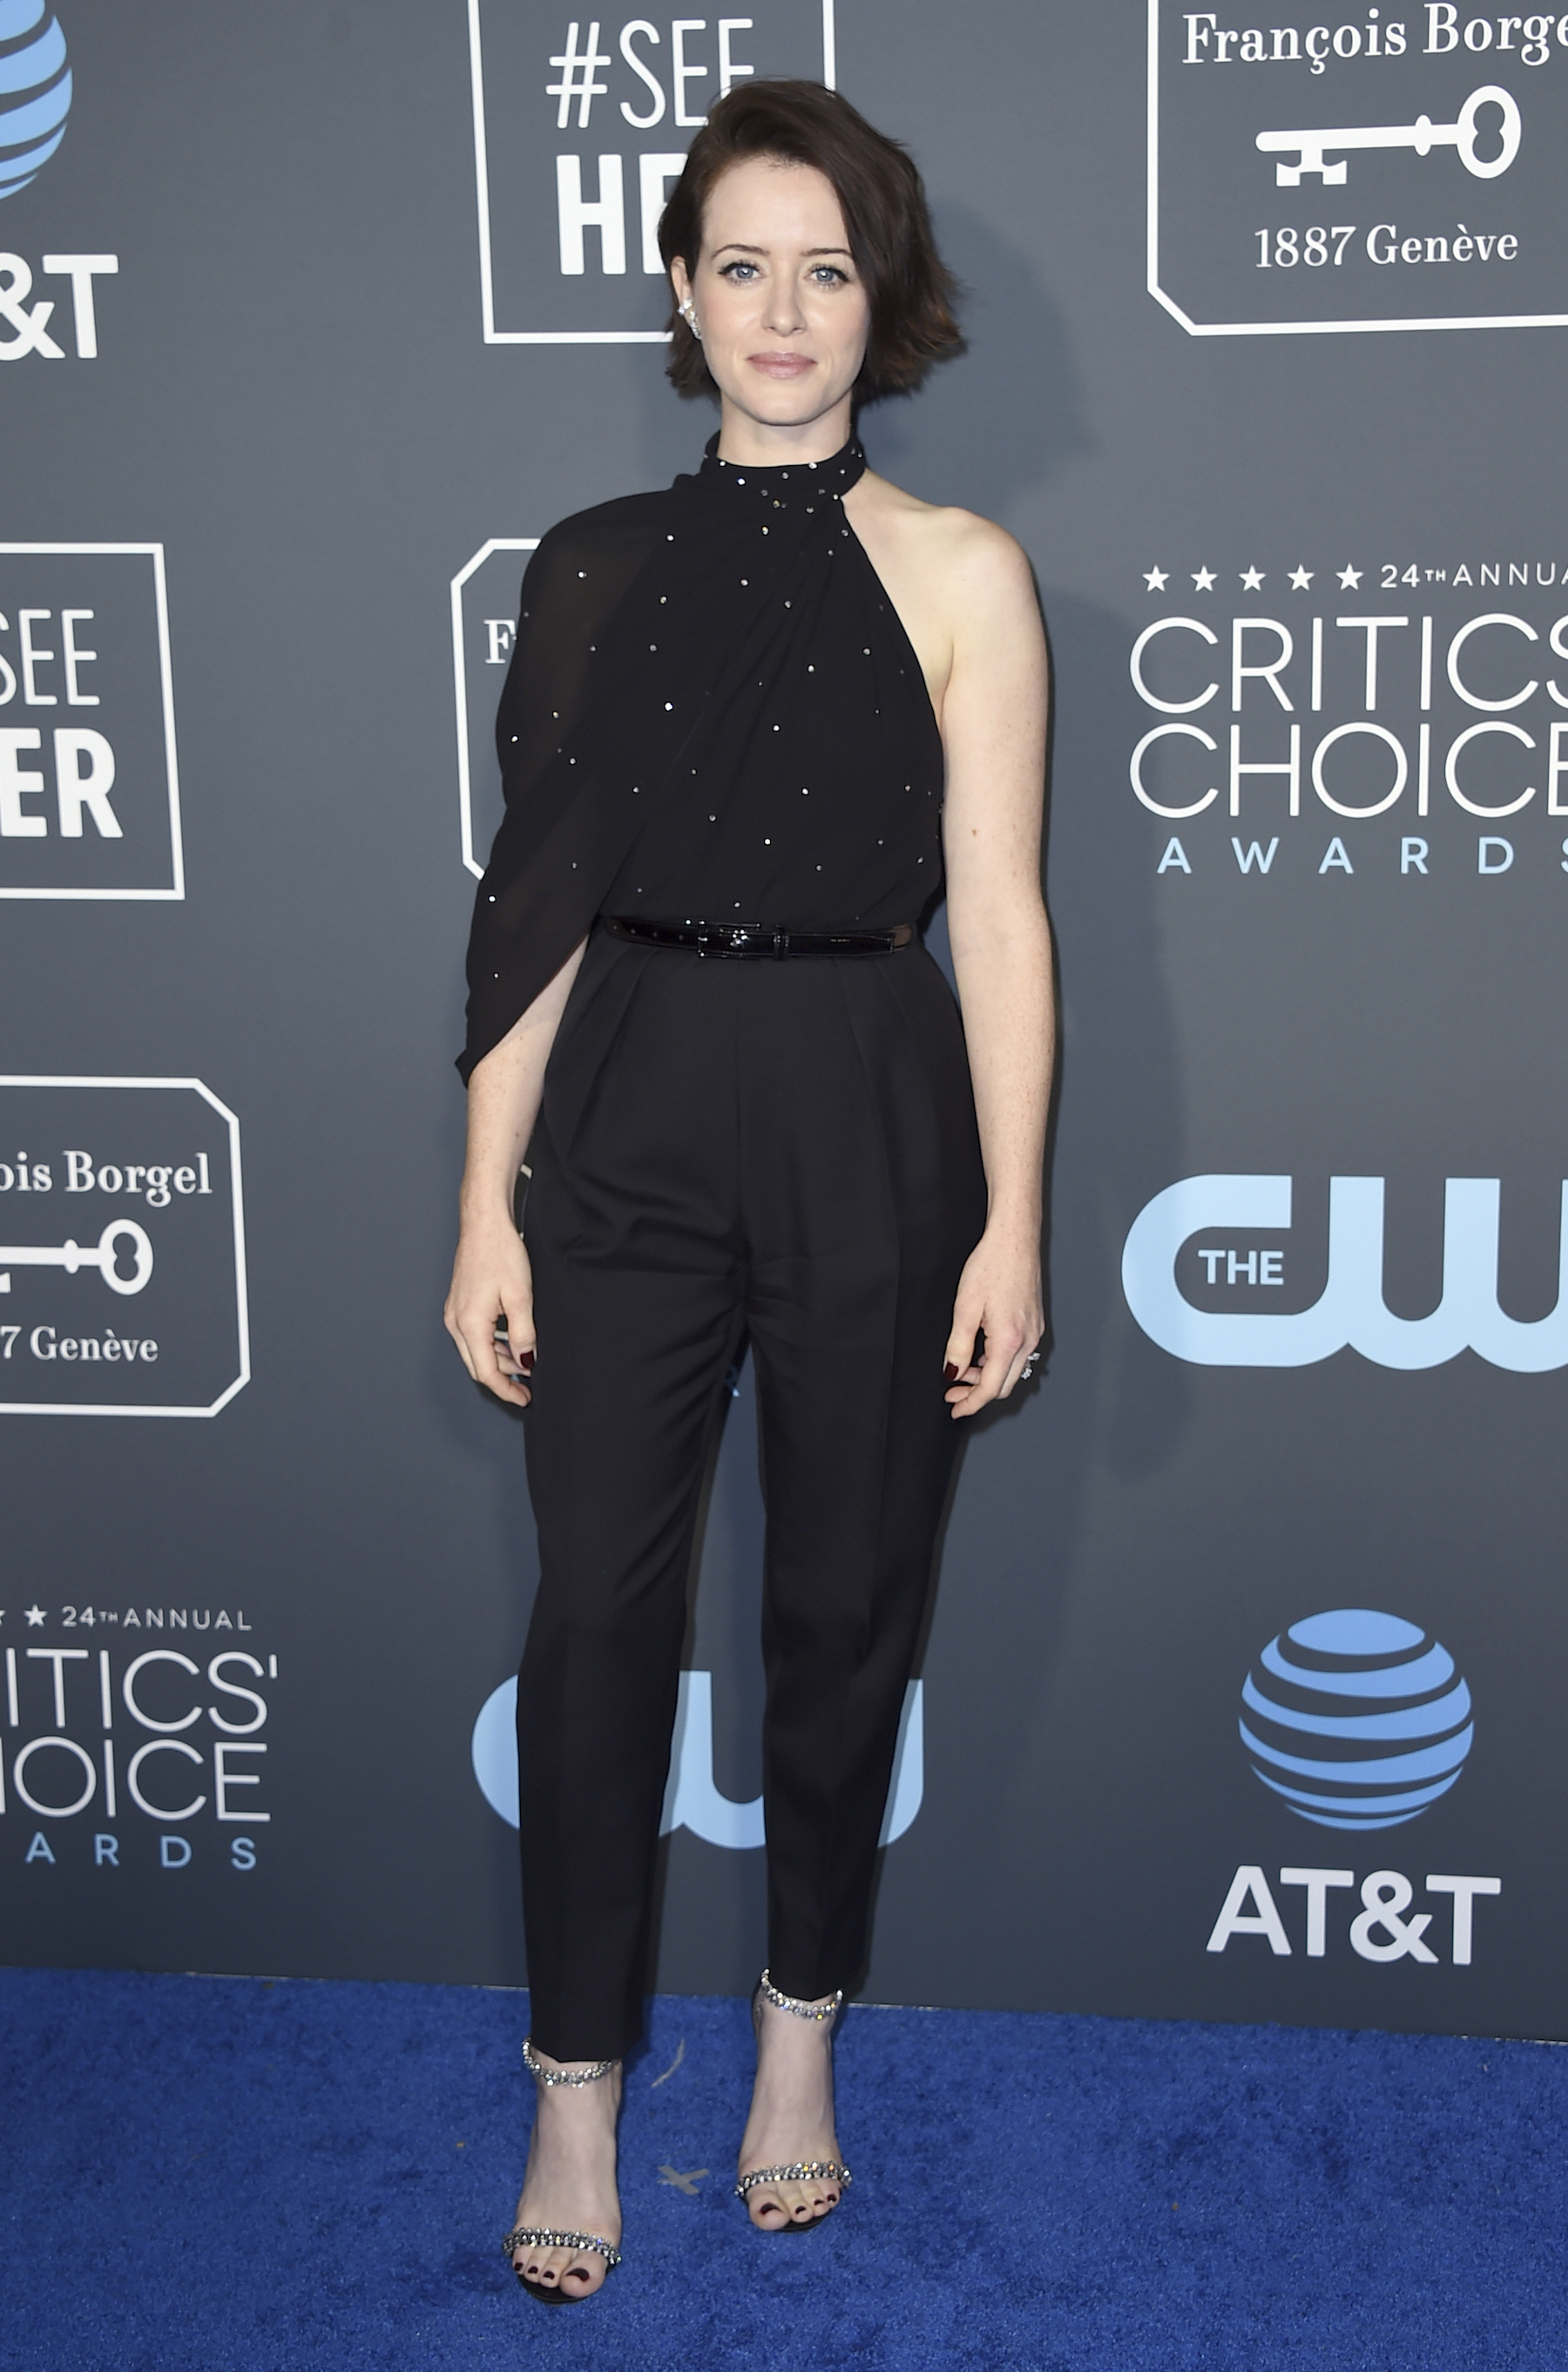 <div class='meta'><div class='origin-logo' data-origin='AP'></div><span class='caption-text' data-credit='Jordan Strauss/Invision/AP'>Claire Foy arrives at the 24th annual Critics' Choice Awards on Sunday, Jan. 13, 2019, at the Barker Hangar in Santa Monica, Calif.</span></div>